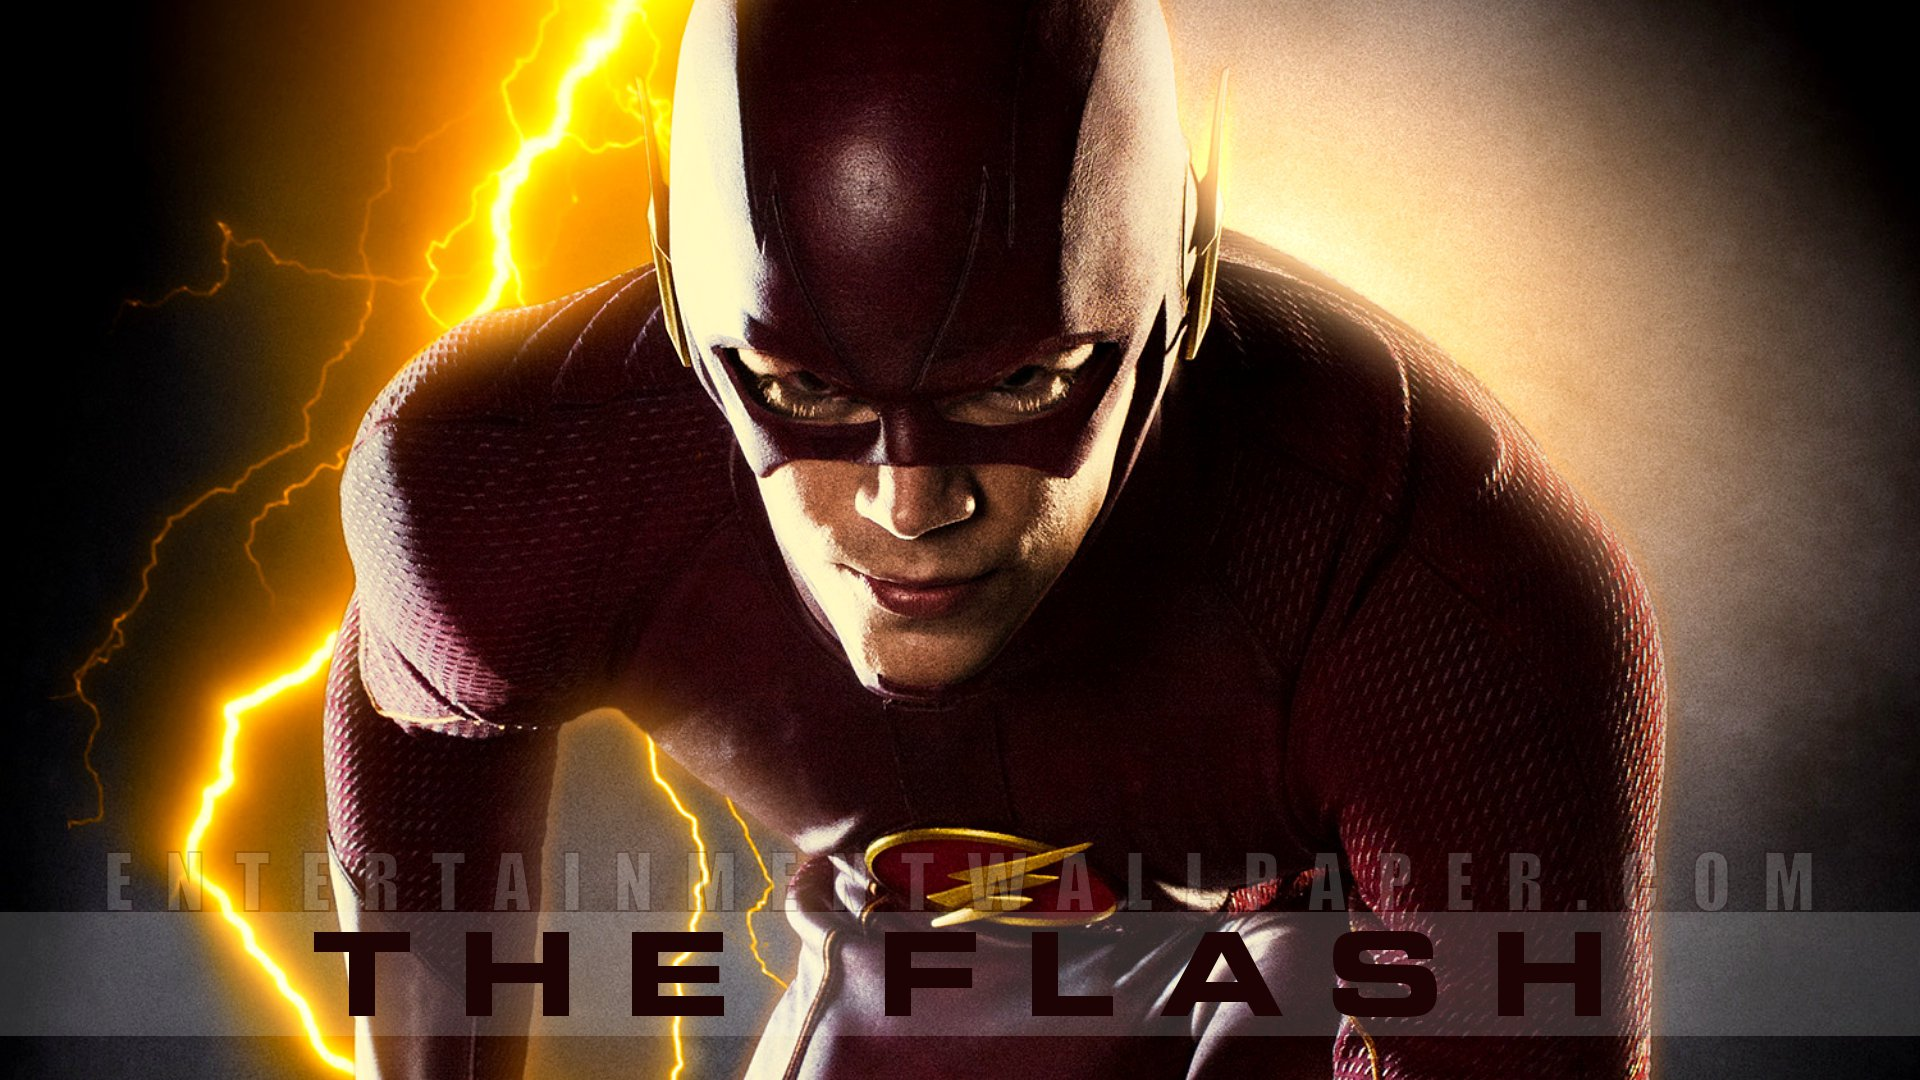 the flash wallpaper 20044125 size 1920x1080 more the flash wallpaper 1920x1080